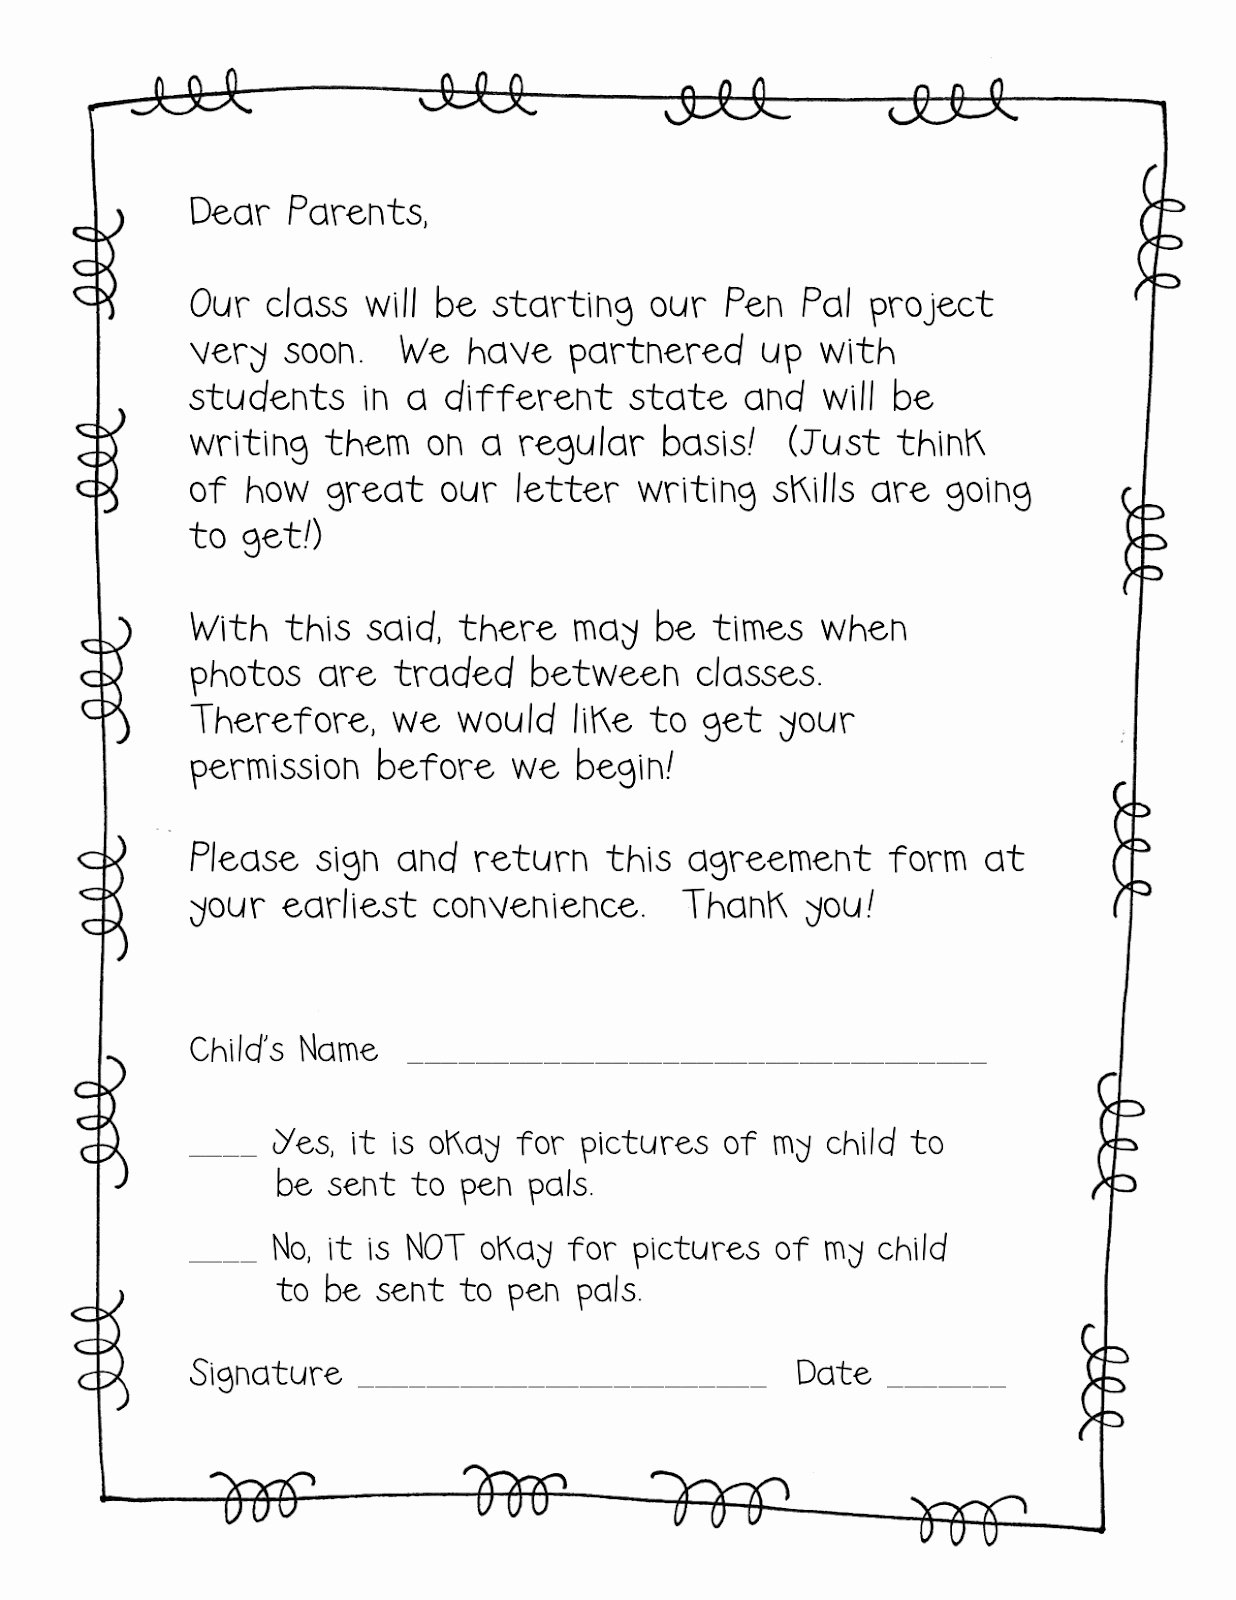 Pen Pal Letter format Beautiful Supplies Supplies Letter to Parents